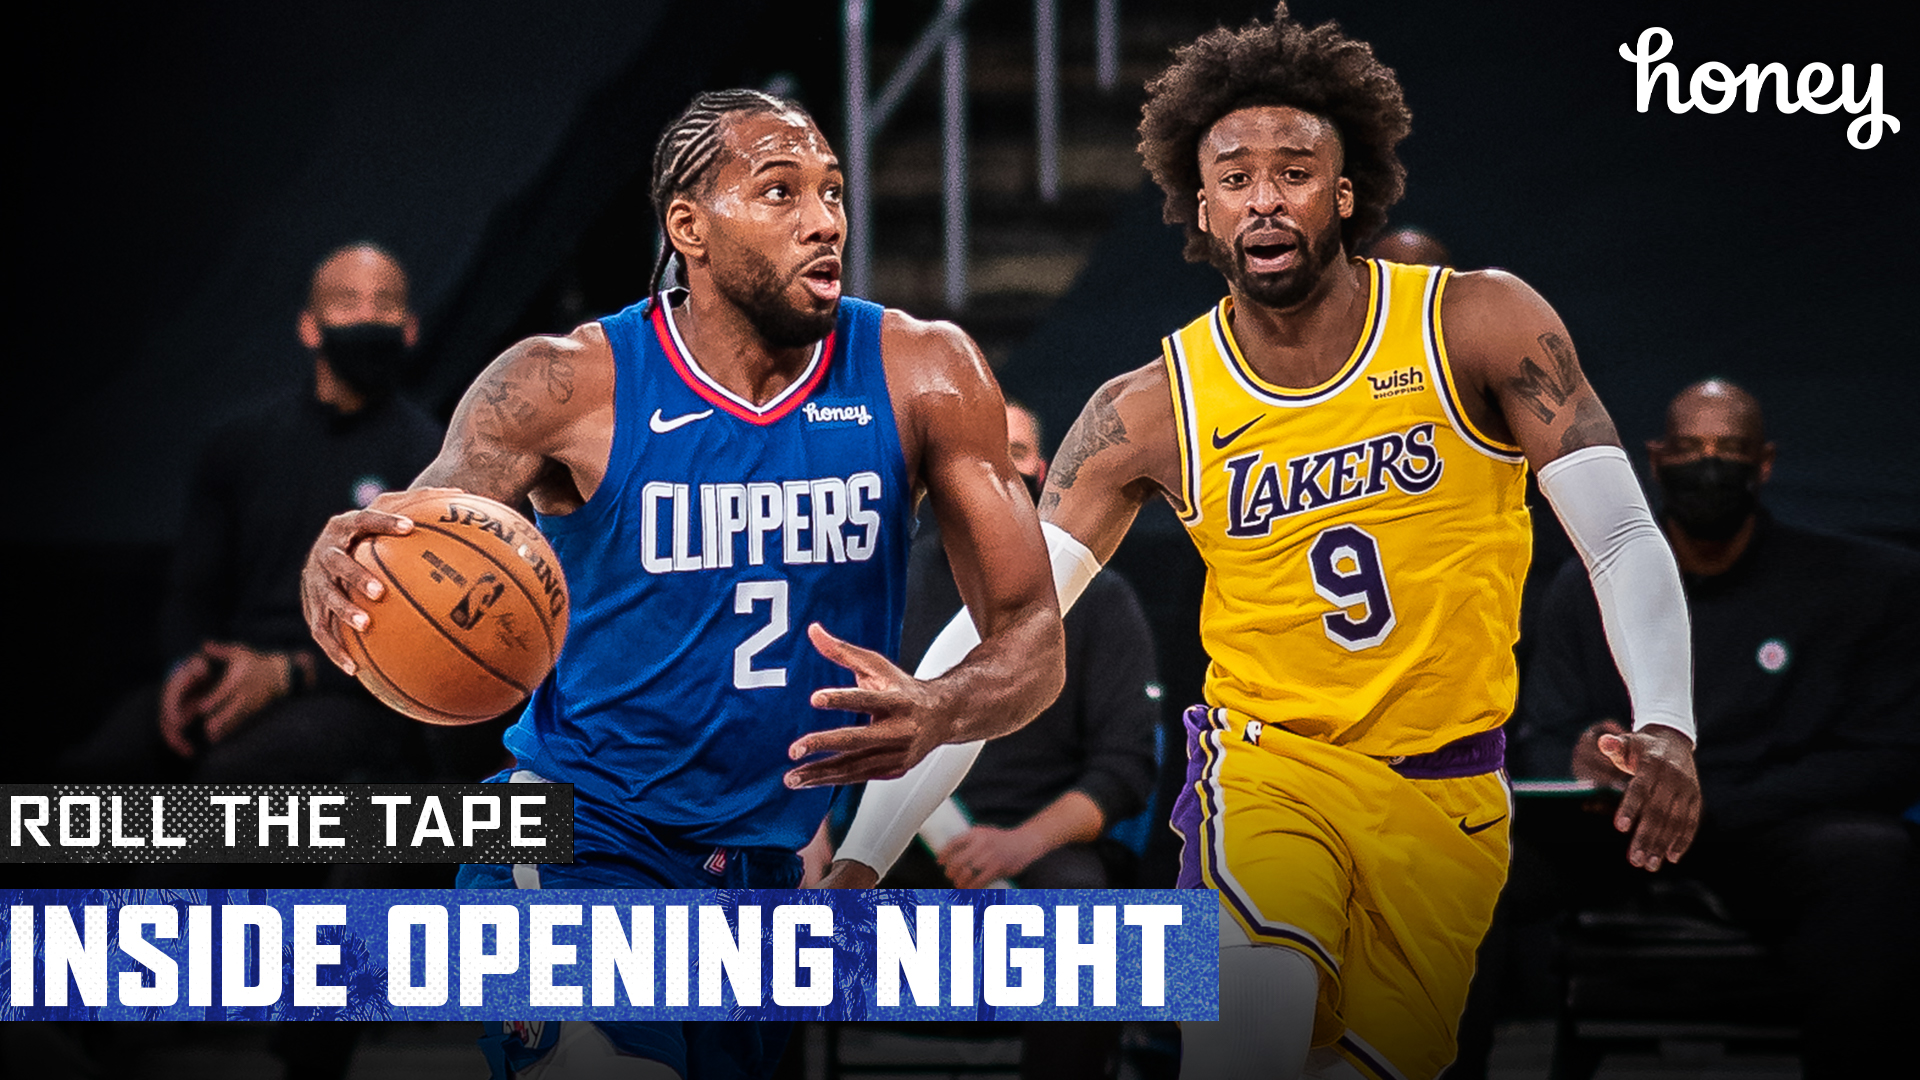 Roll The Tape | Inside Opening Night 2020